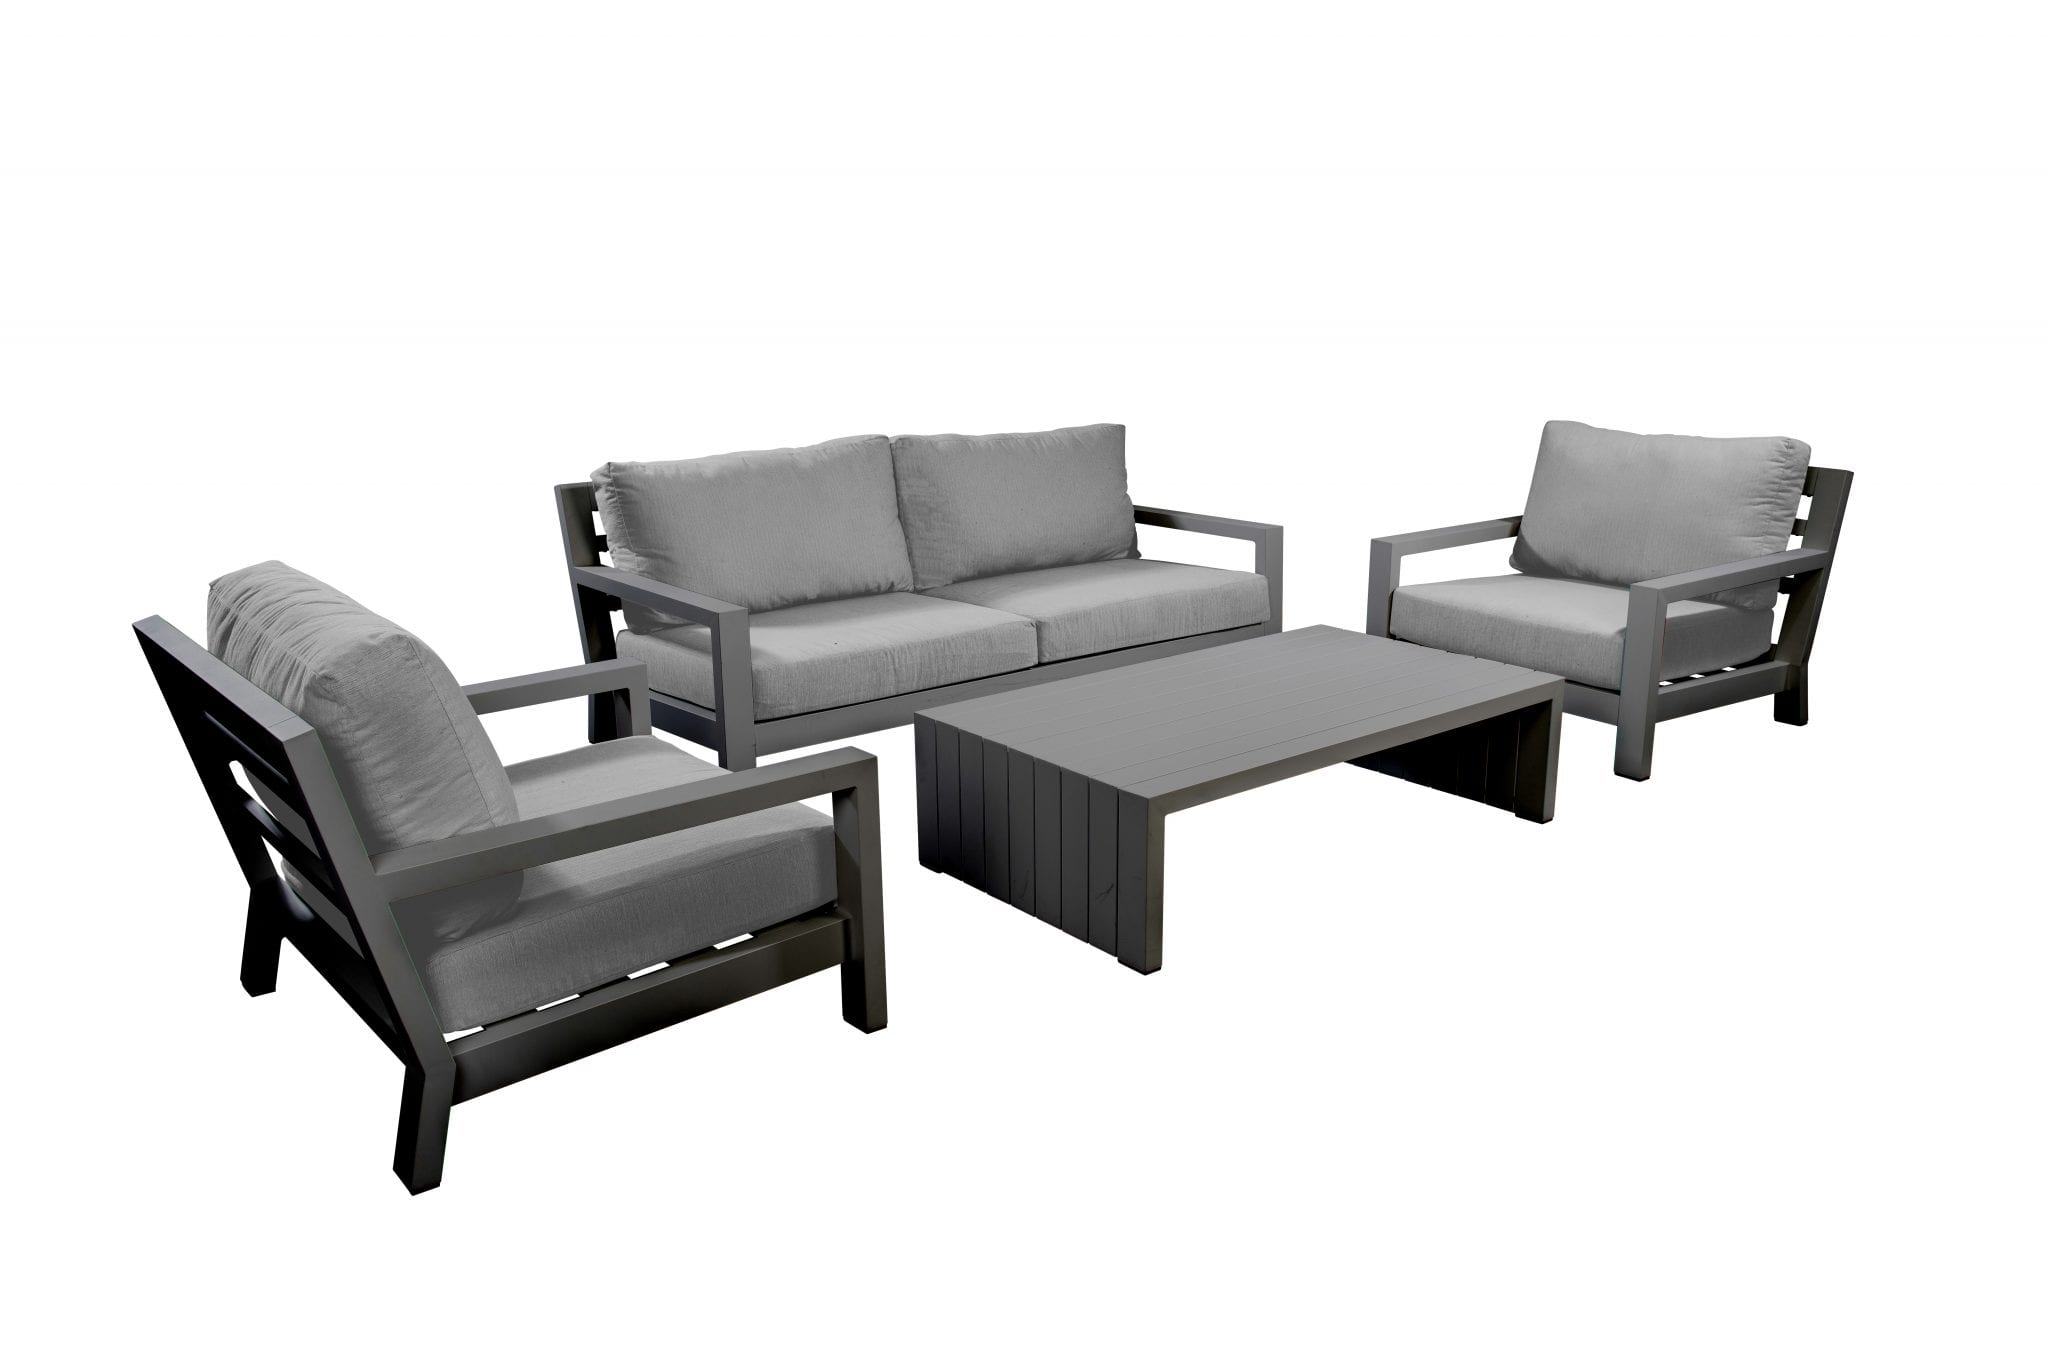 Ookii lounge set - dark grey | Yoi Furniture